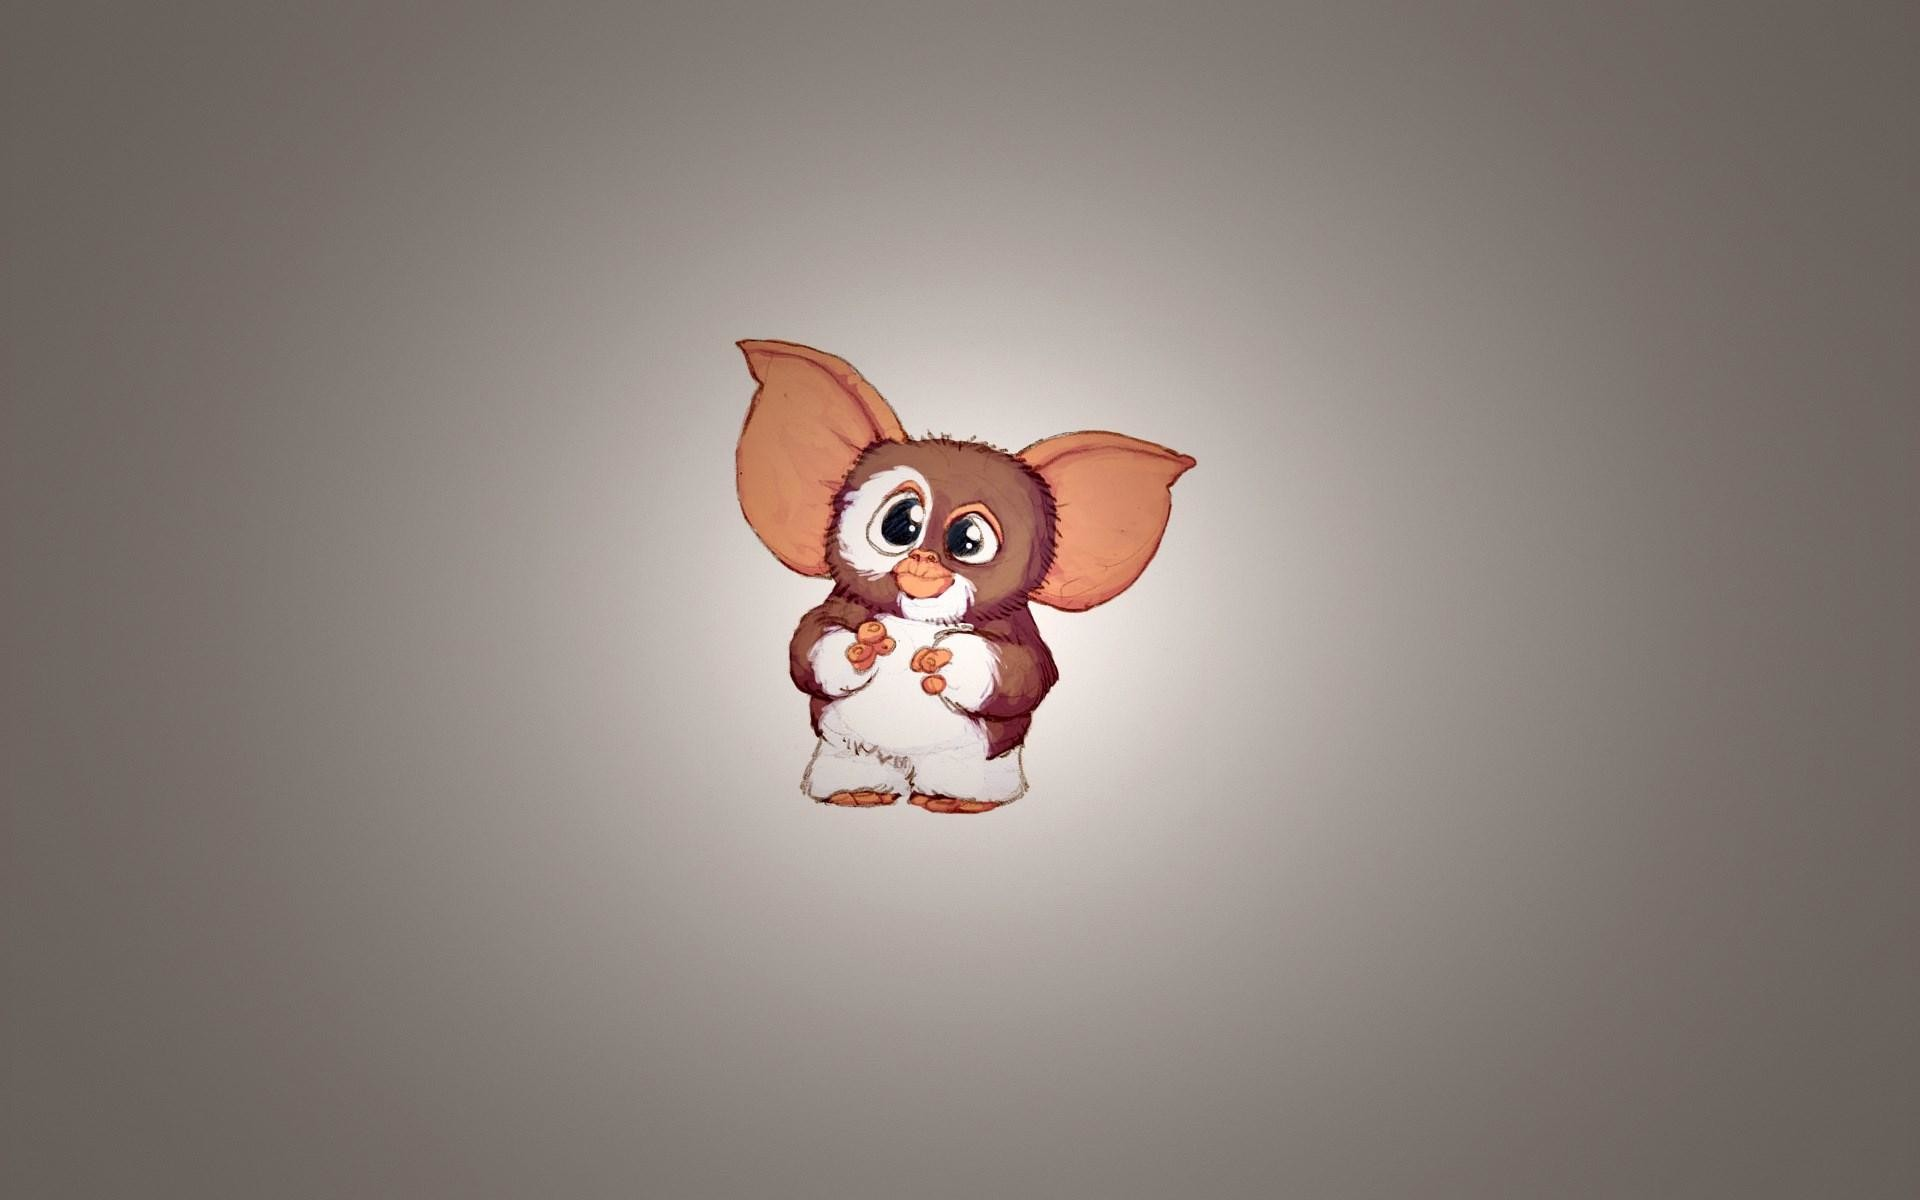 Res: 1920x1200, Gremlins Wallpapers 19 - 1920 X 1200